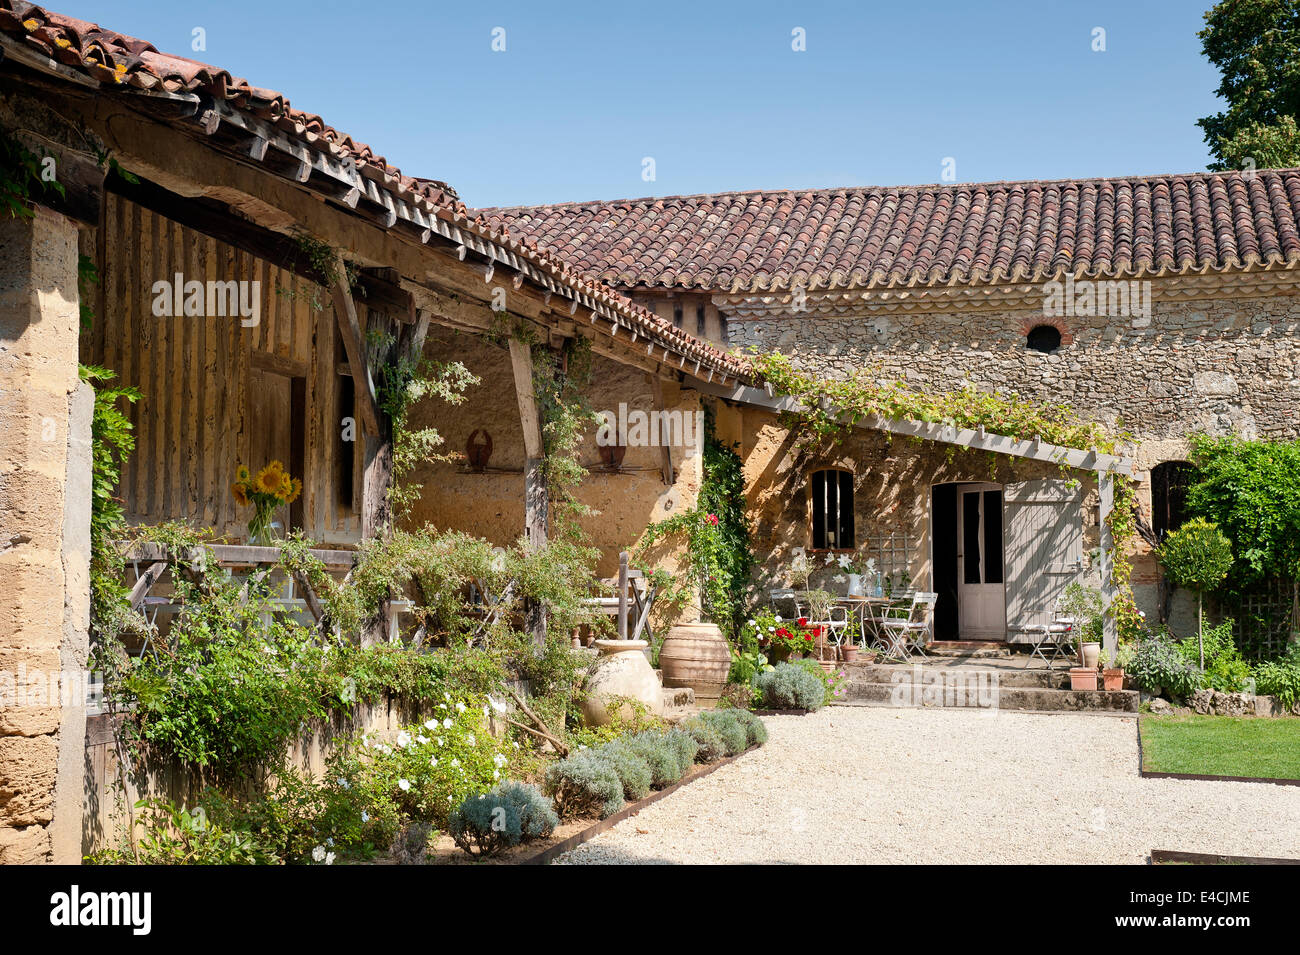 Exterior facade of old converted french barn with lean to and climbing plants - Stock Image